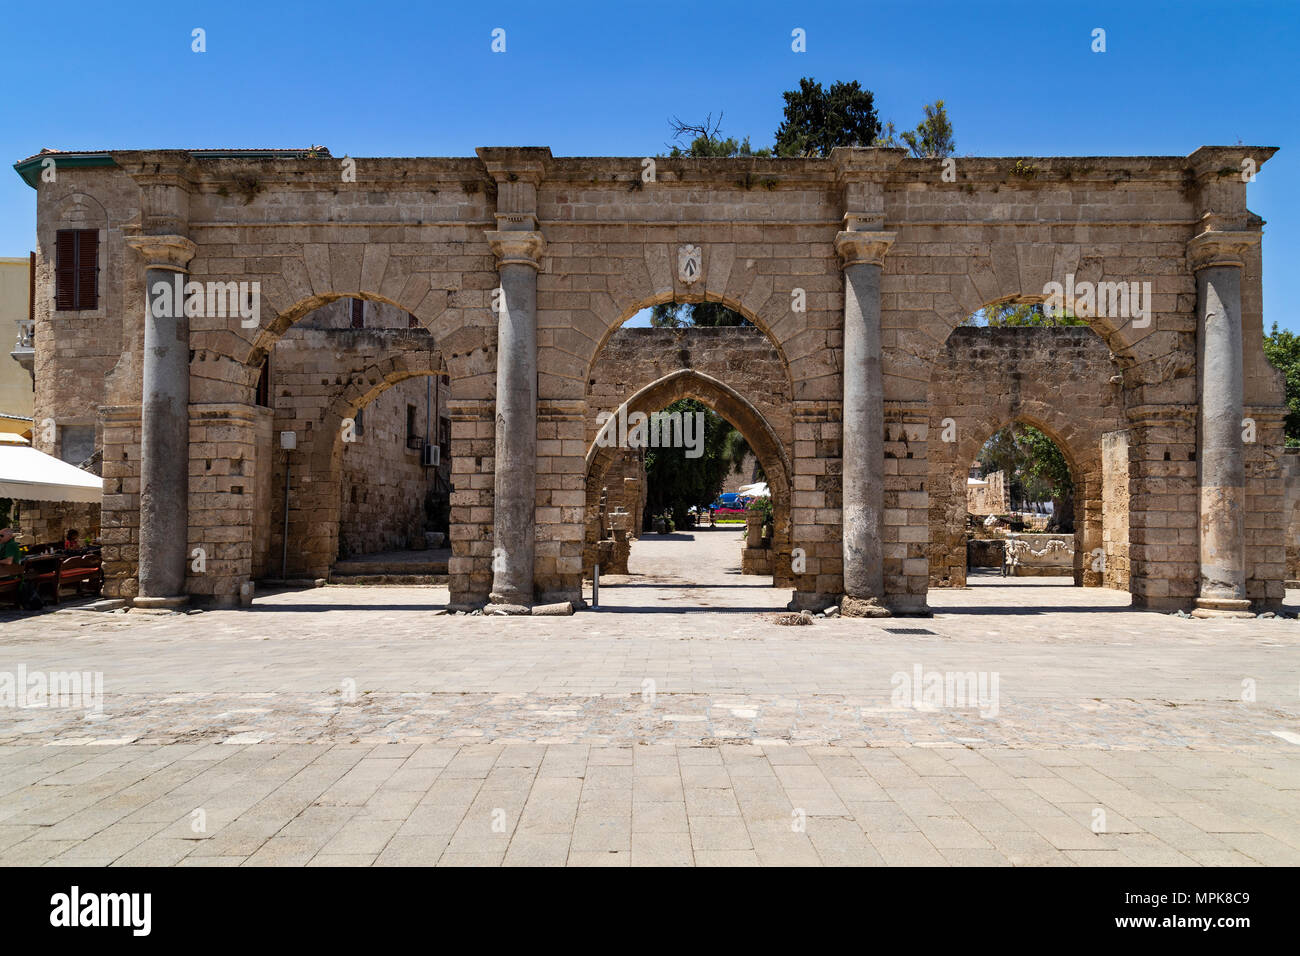 Historic gateway in Namik Kemalin Square in the city of Famagusta in the Turkish Republic of Northern Cyprus (TRNC). - Stock Image